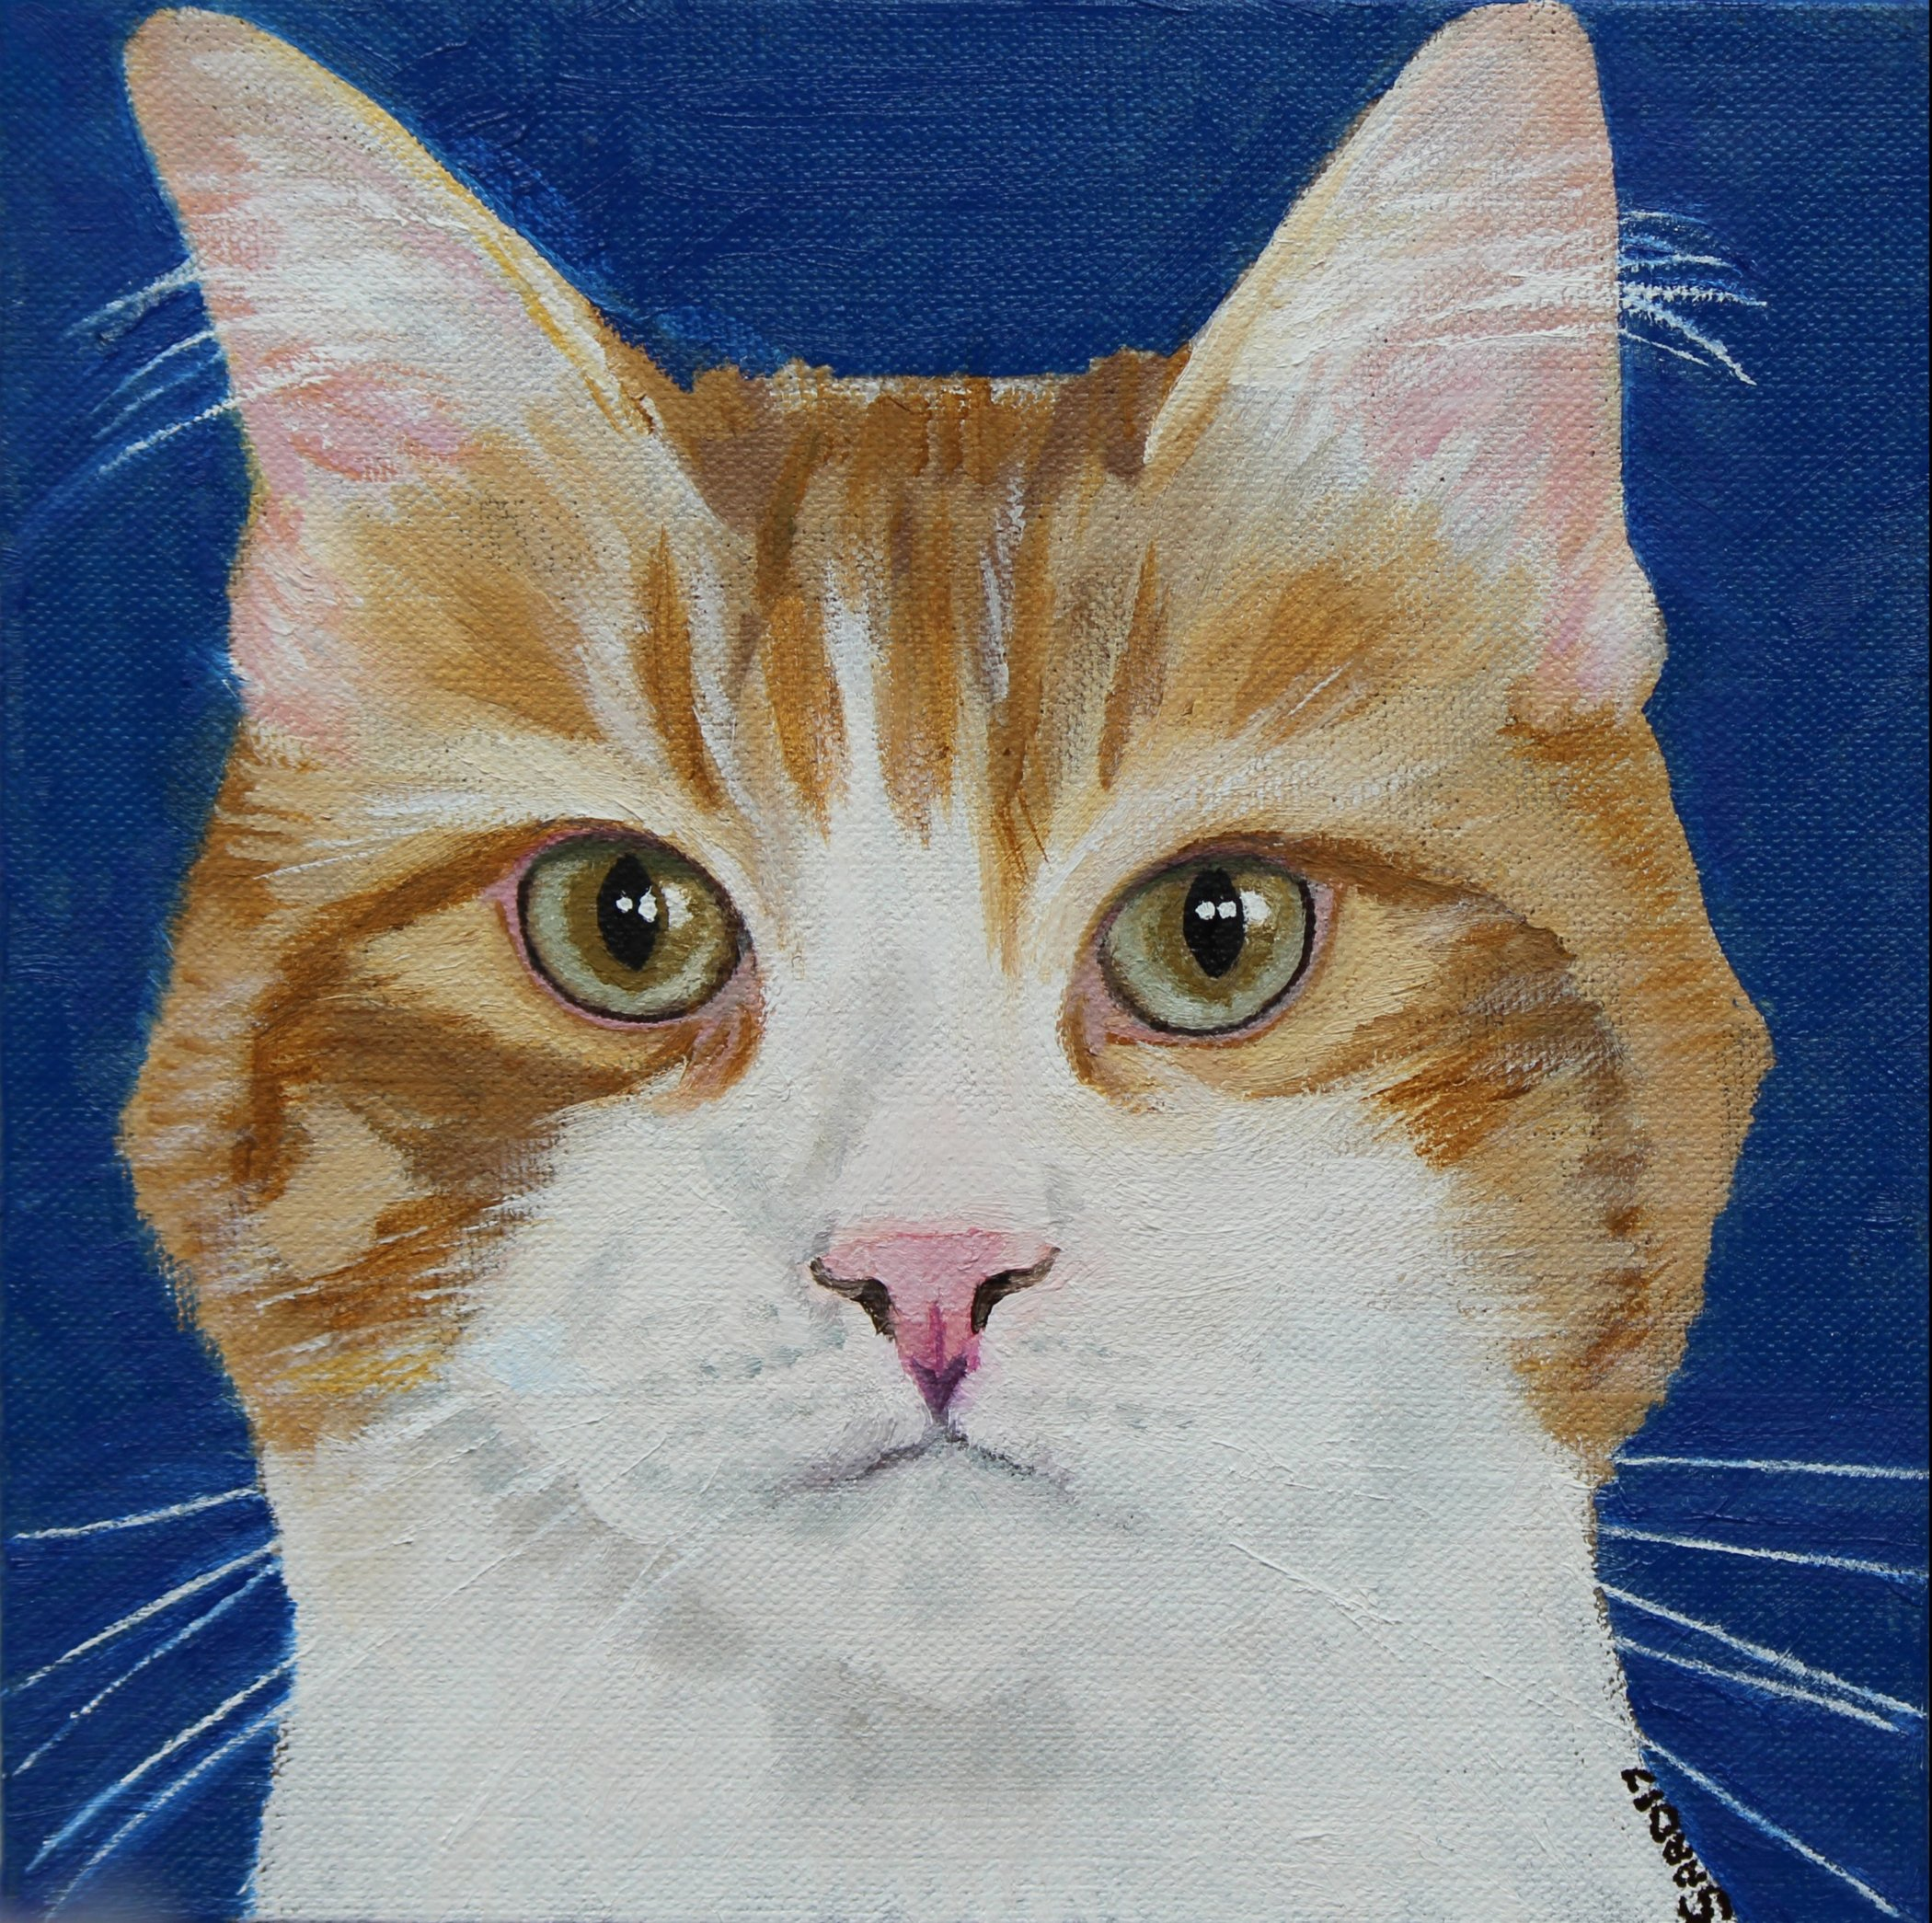 The Friday Art Cat: George the Turkish Van